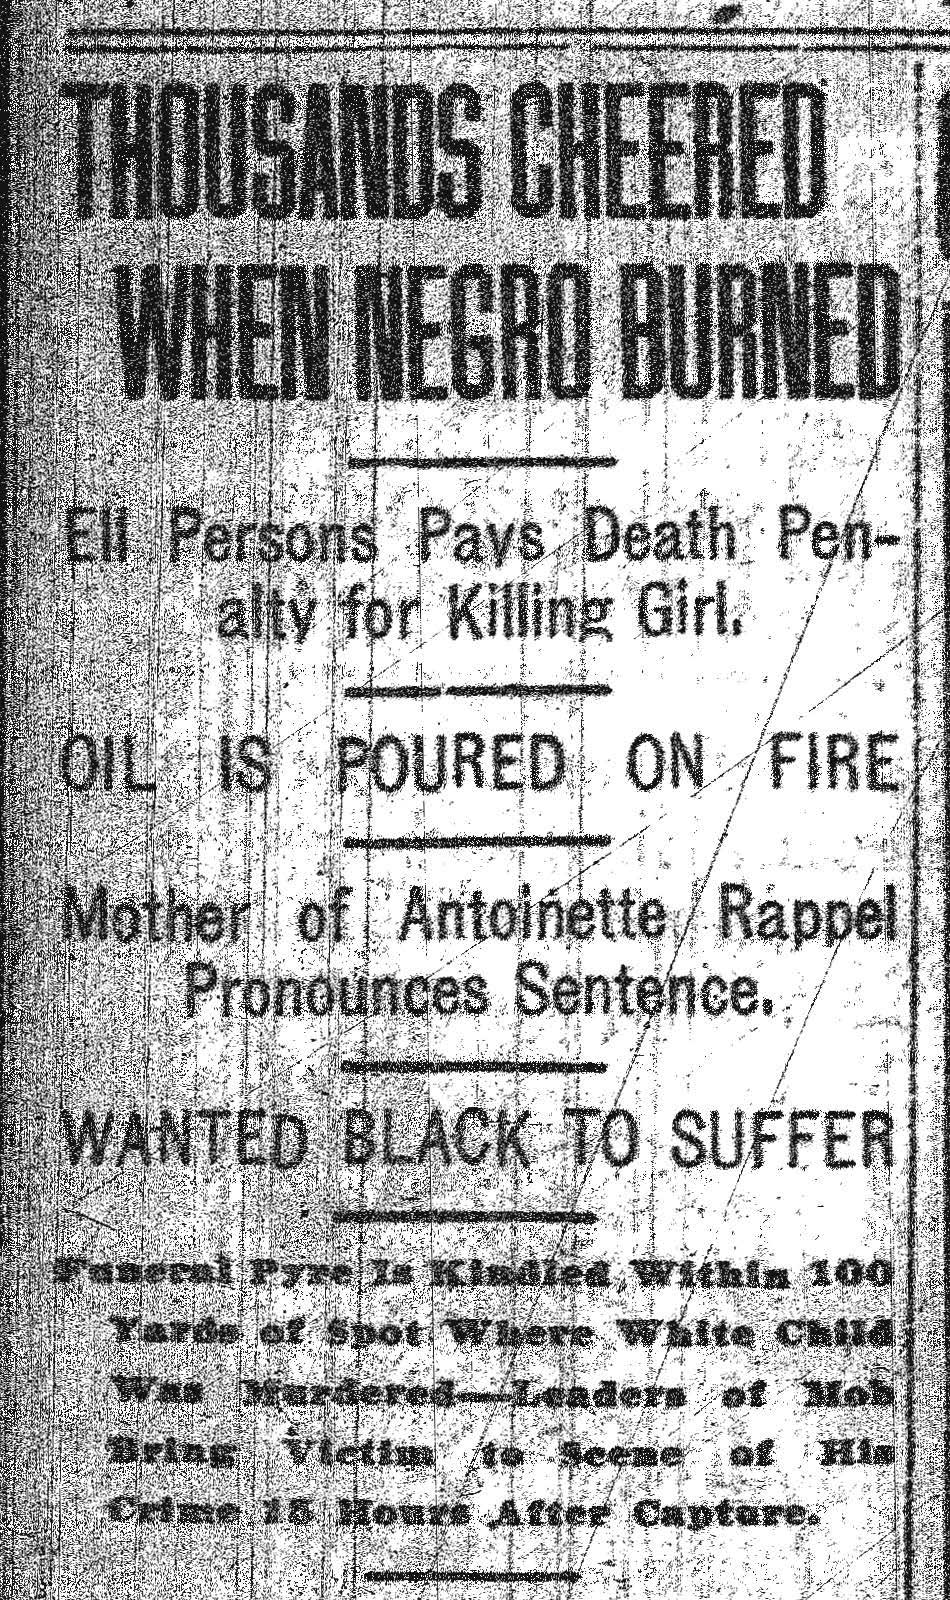 Commercial Appeal, 5/23/1917